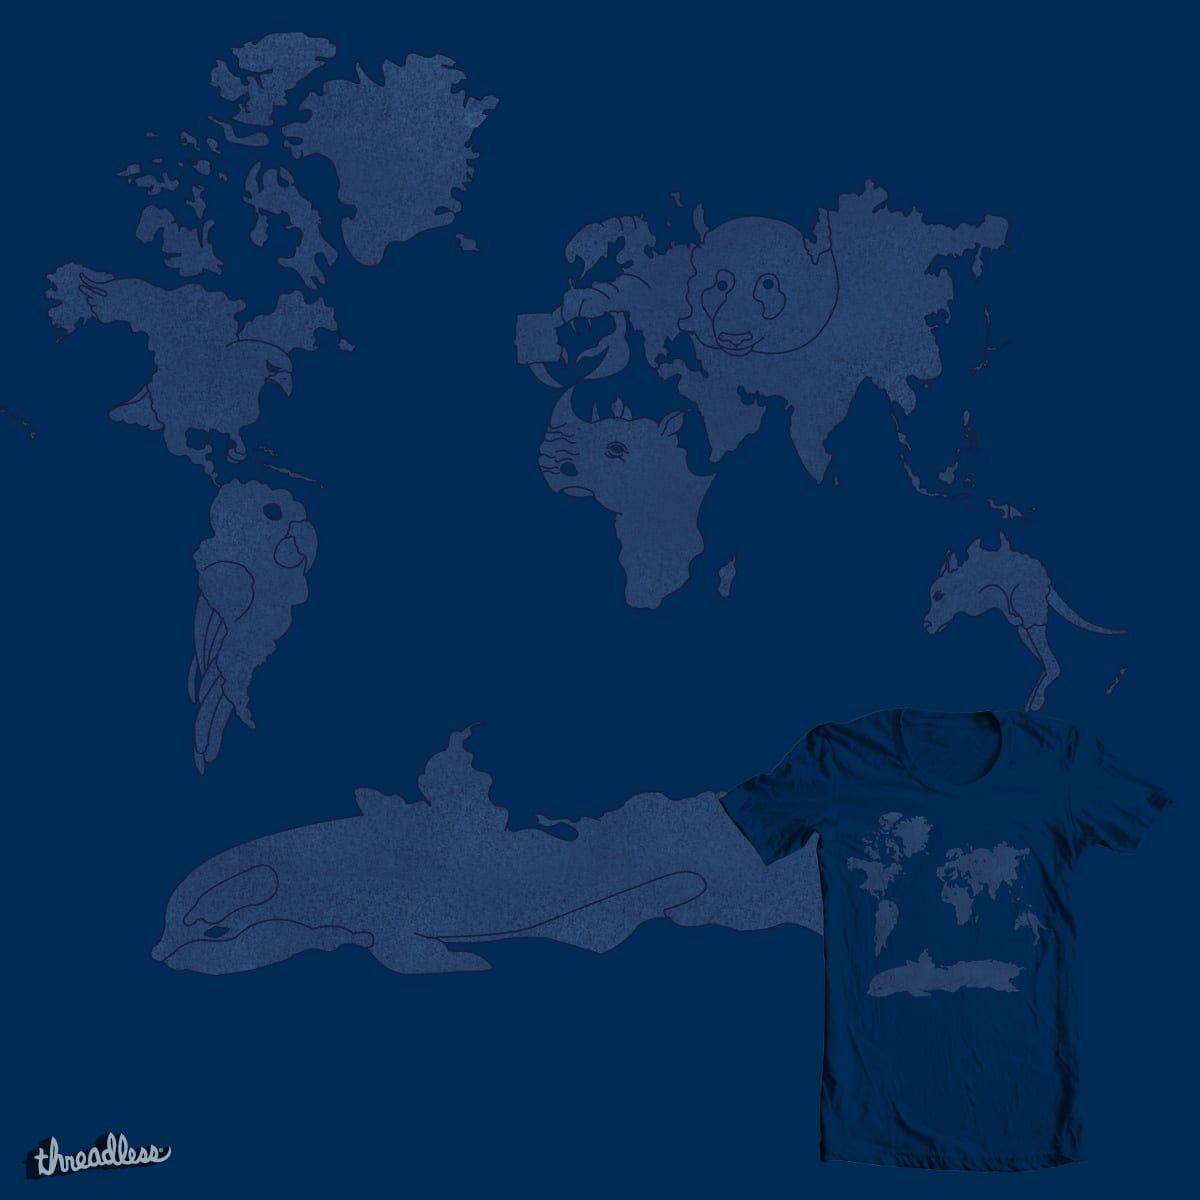 Landmasses of the Wild by Ru Chery on Threadless